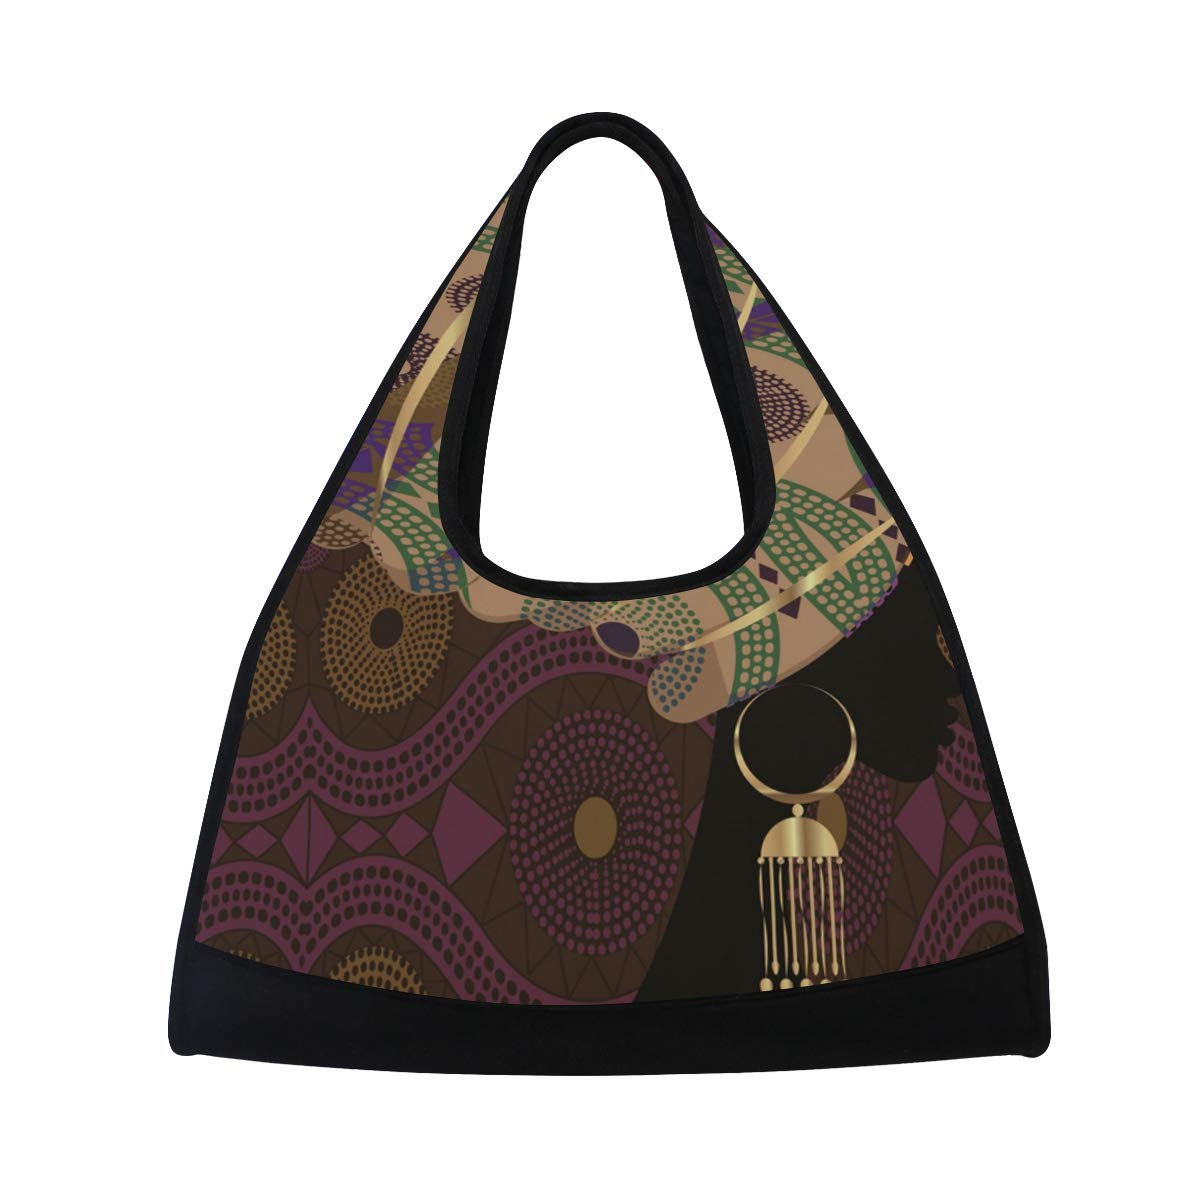 Gym Bag Sports Holdall African Woman Canvas Shoulder Bag Overnight Travel Bag for Men and Women